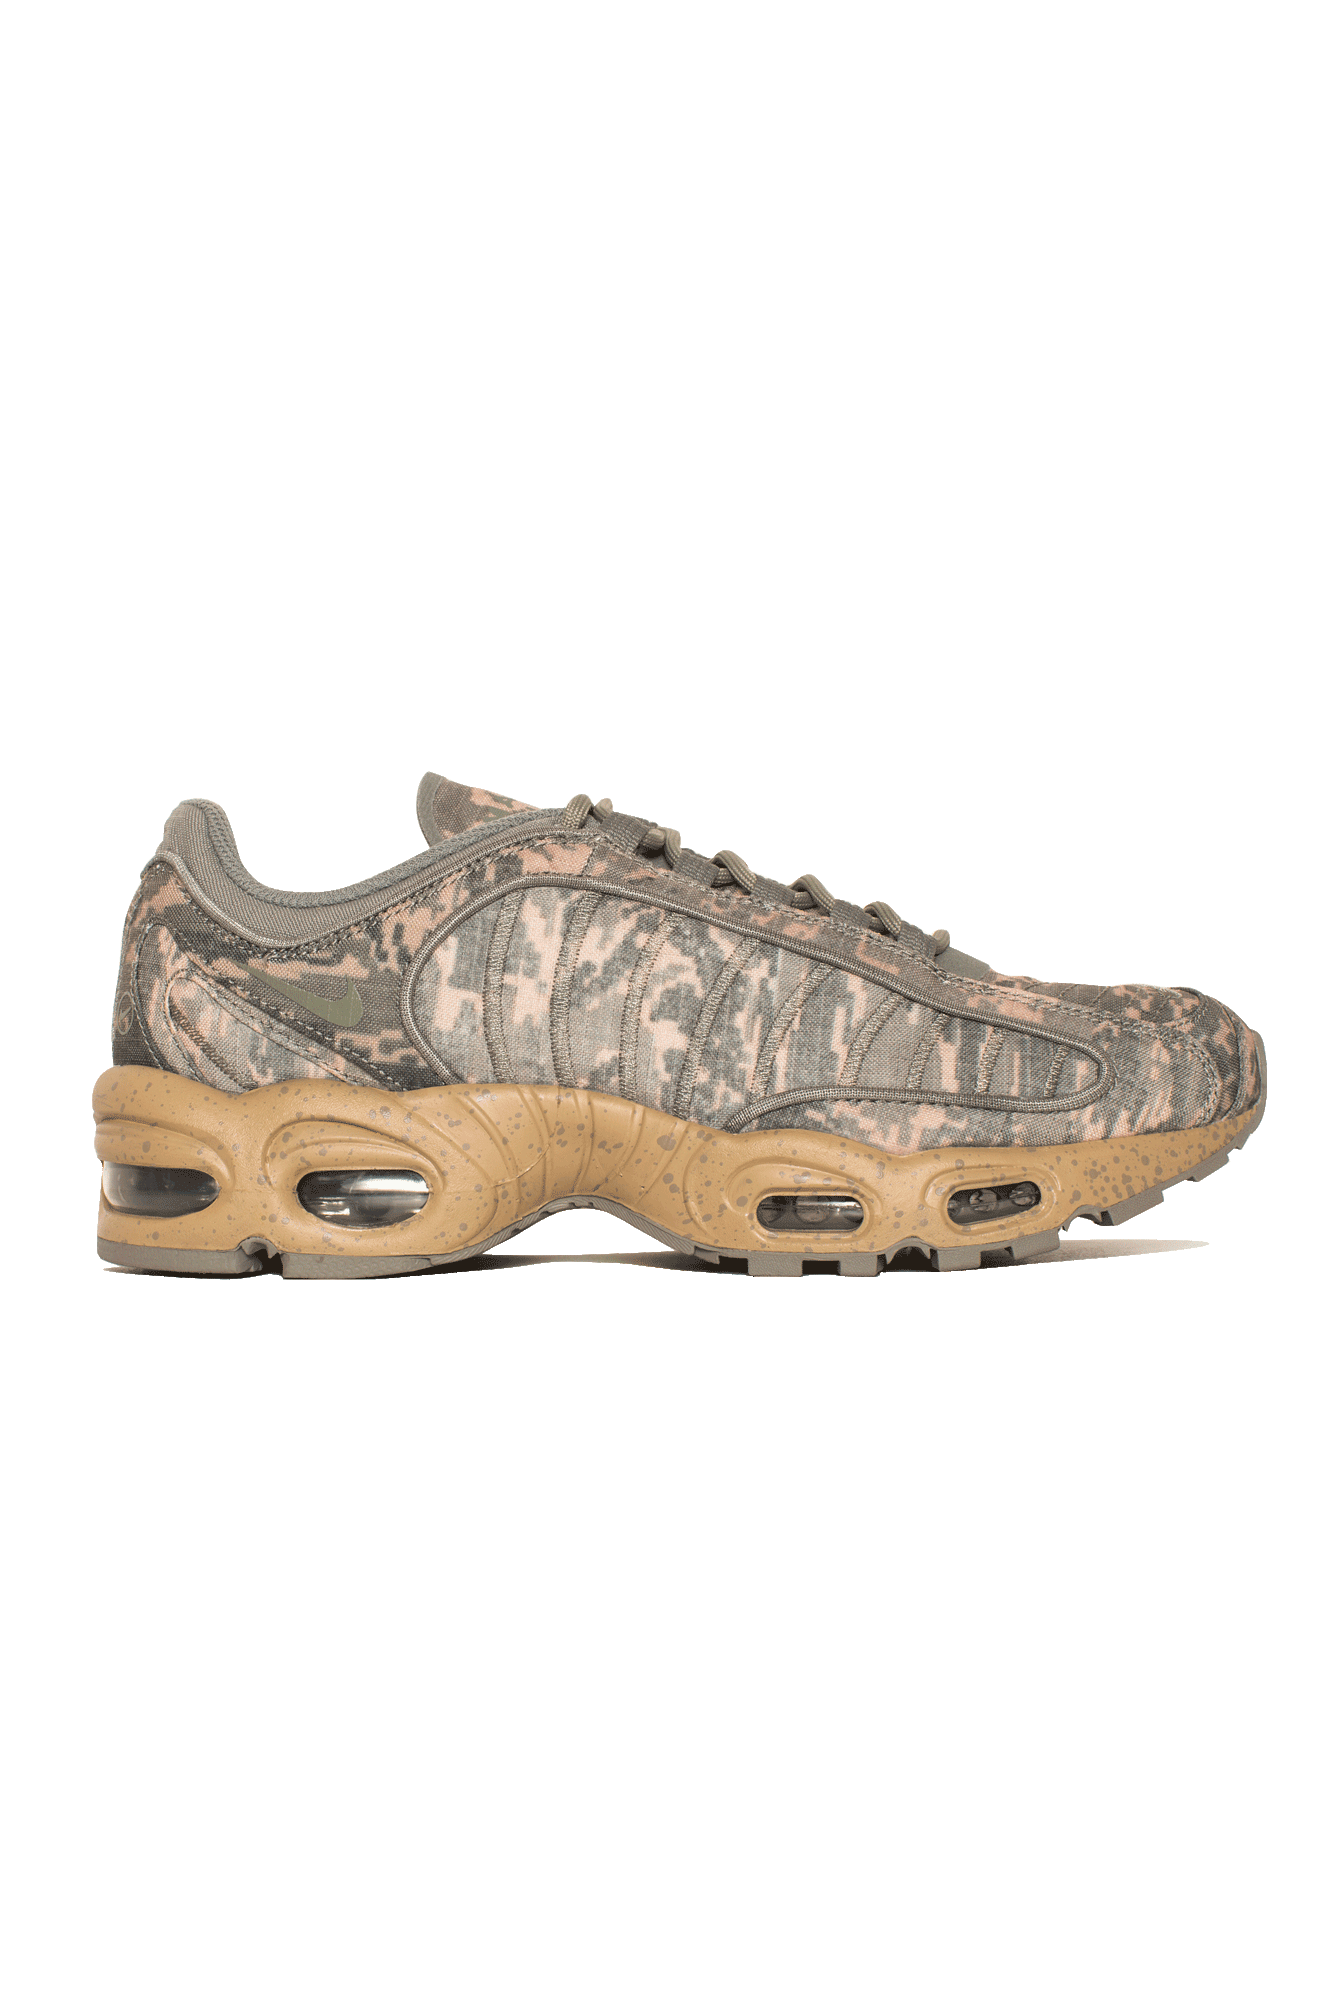 Sneakers Nike Air Max Tailwind IV SP Brown - One Block Down